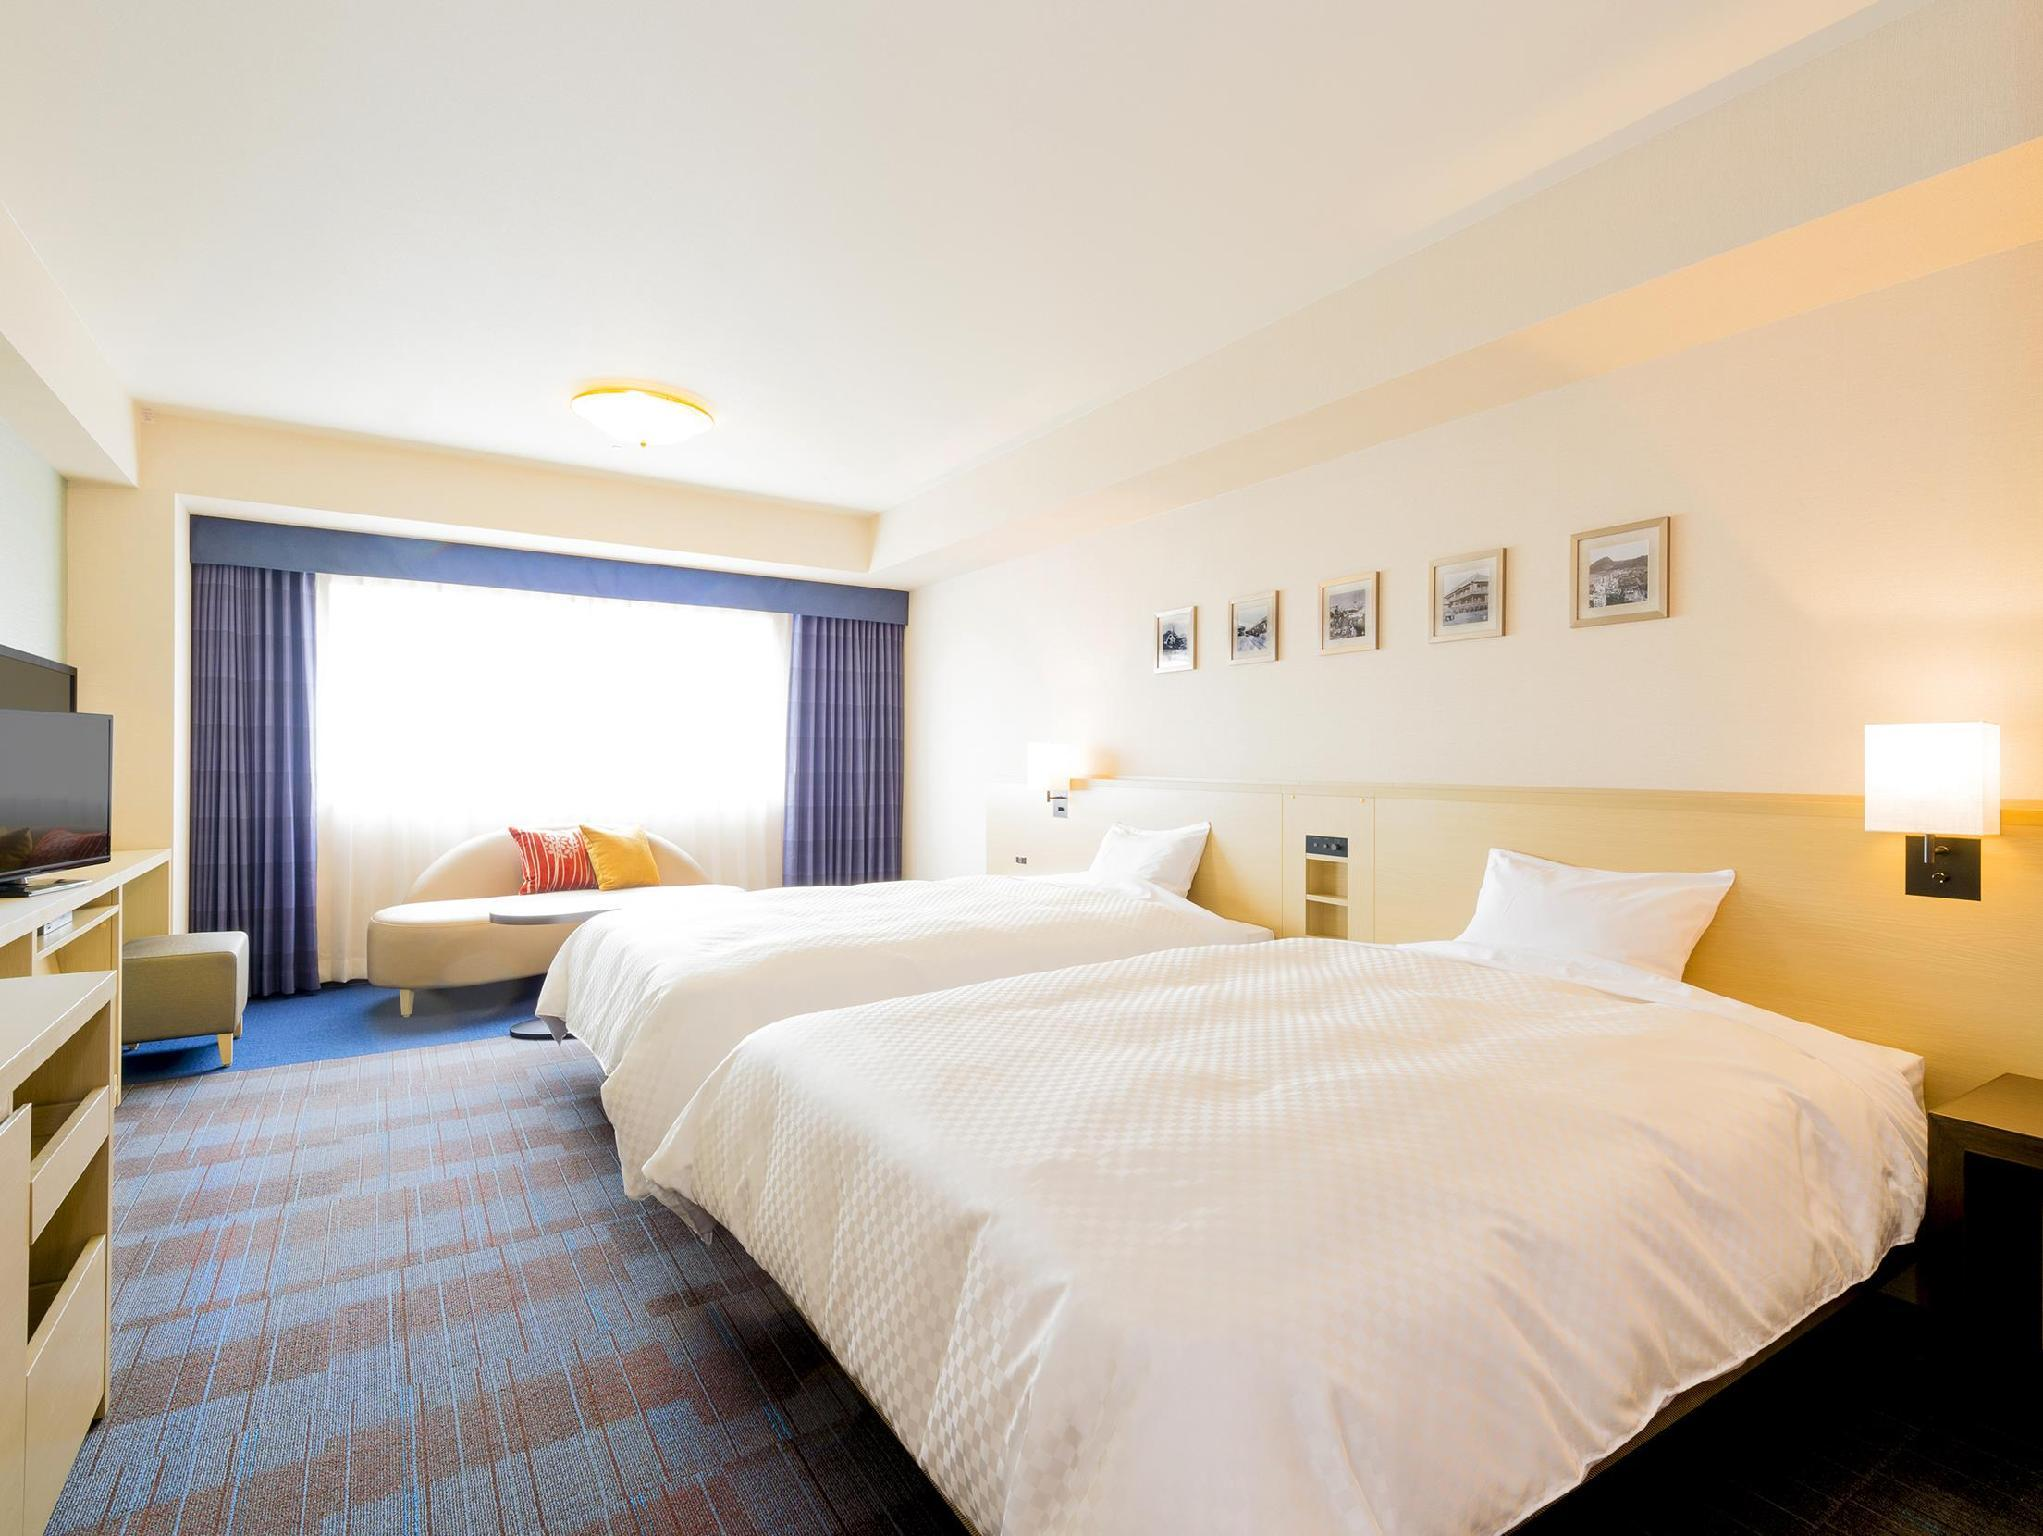 디럭스 트윈 (금연) (Deluxe Twin Non-Smoking)